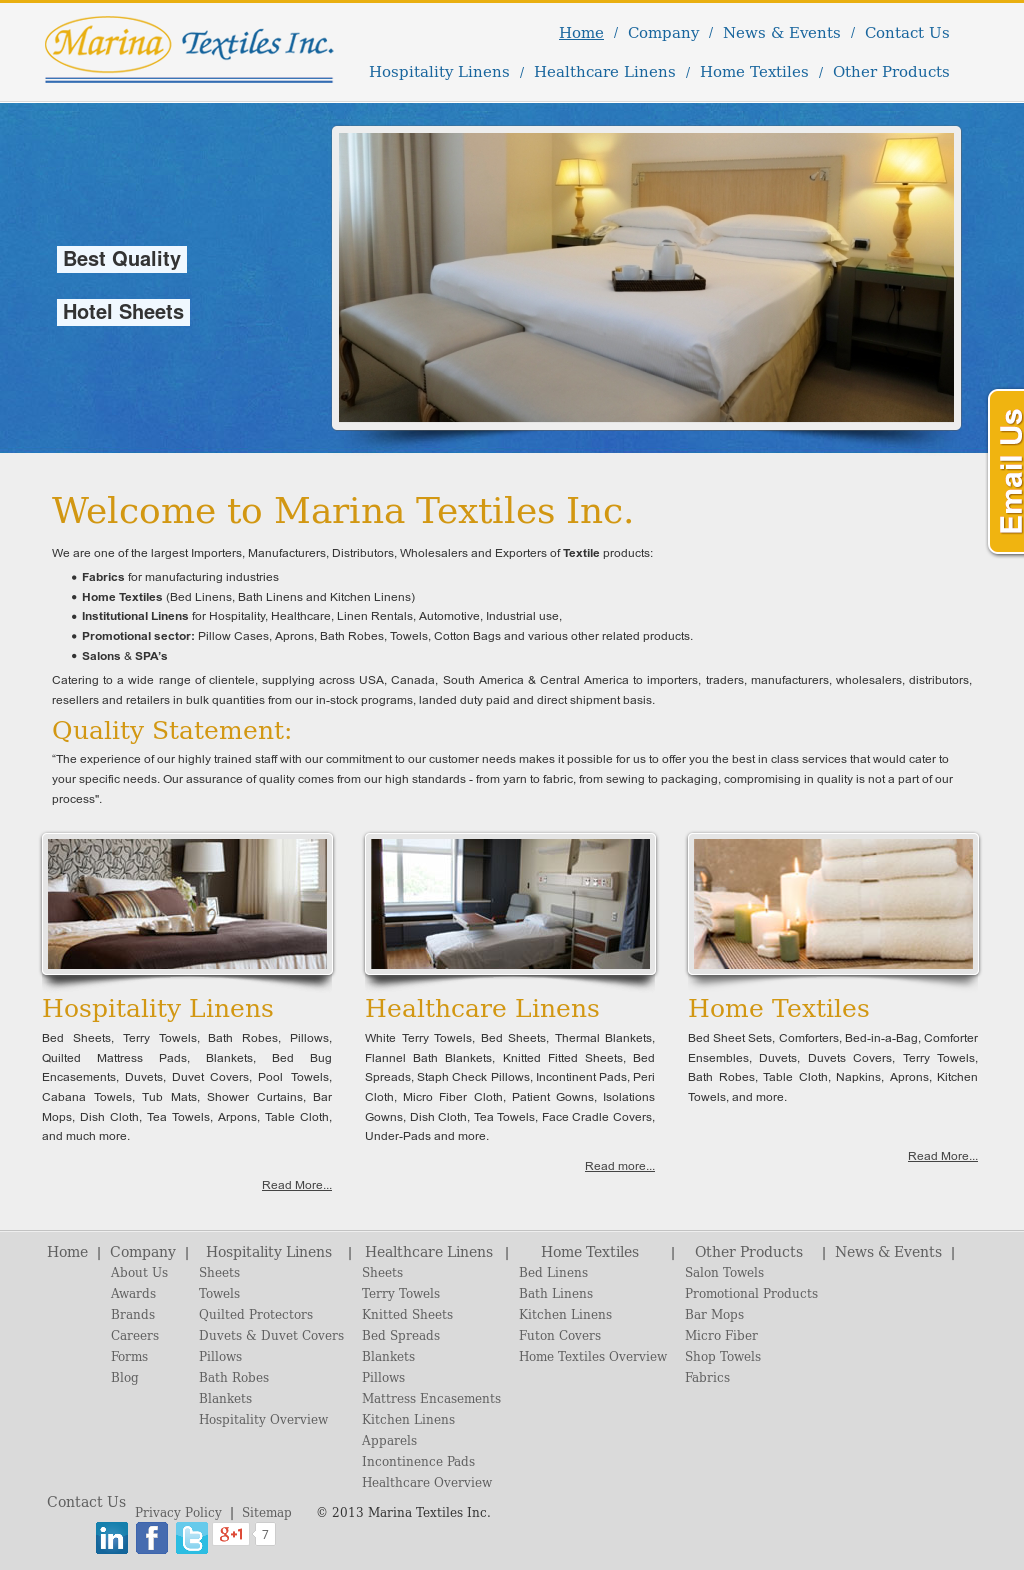 Marina Textiles Competitors, Revenue and Employees - Owler